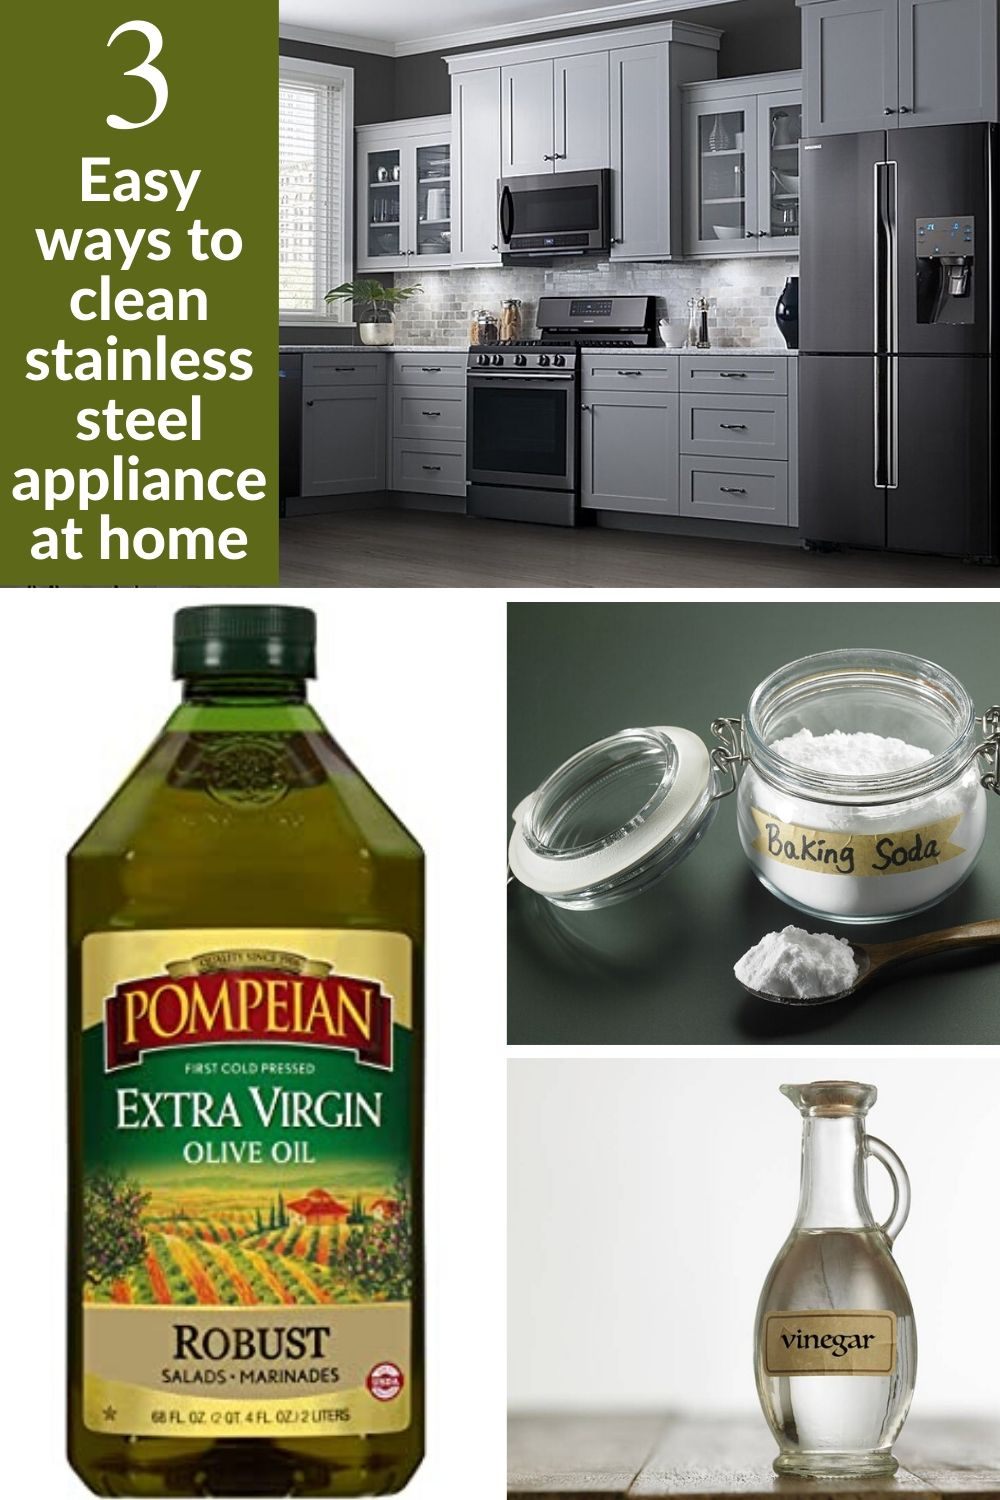 Easy ways to clean stainless steel appliance at home